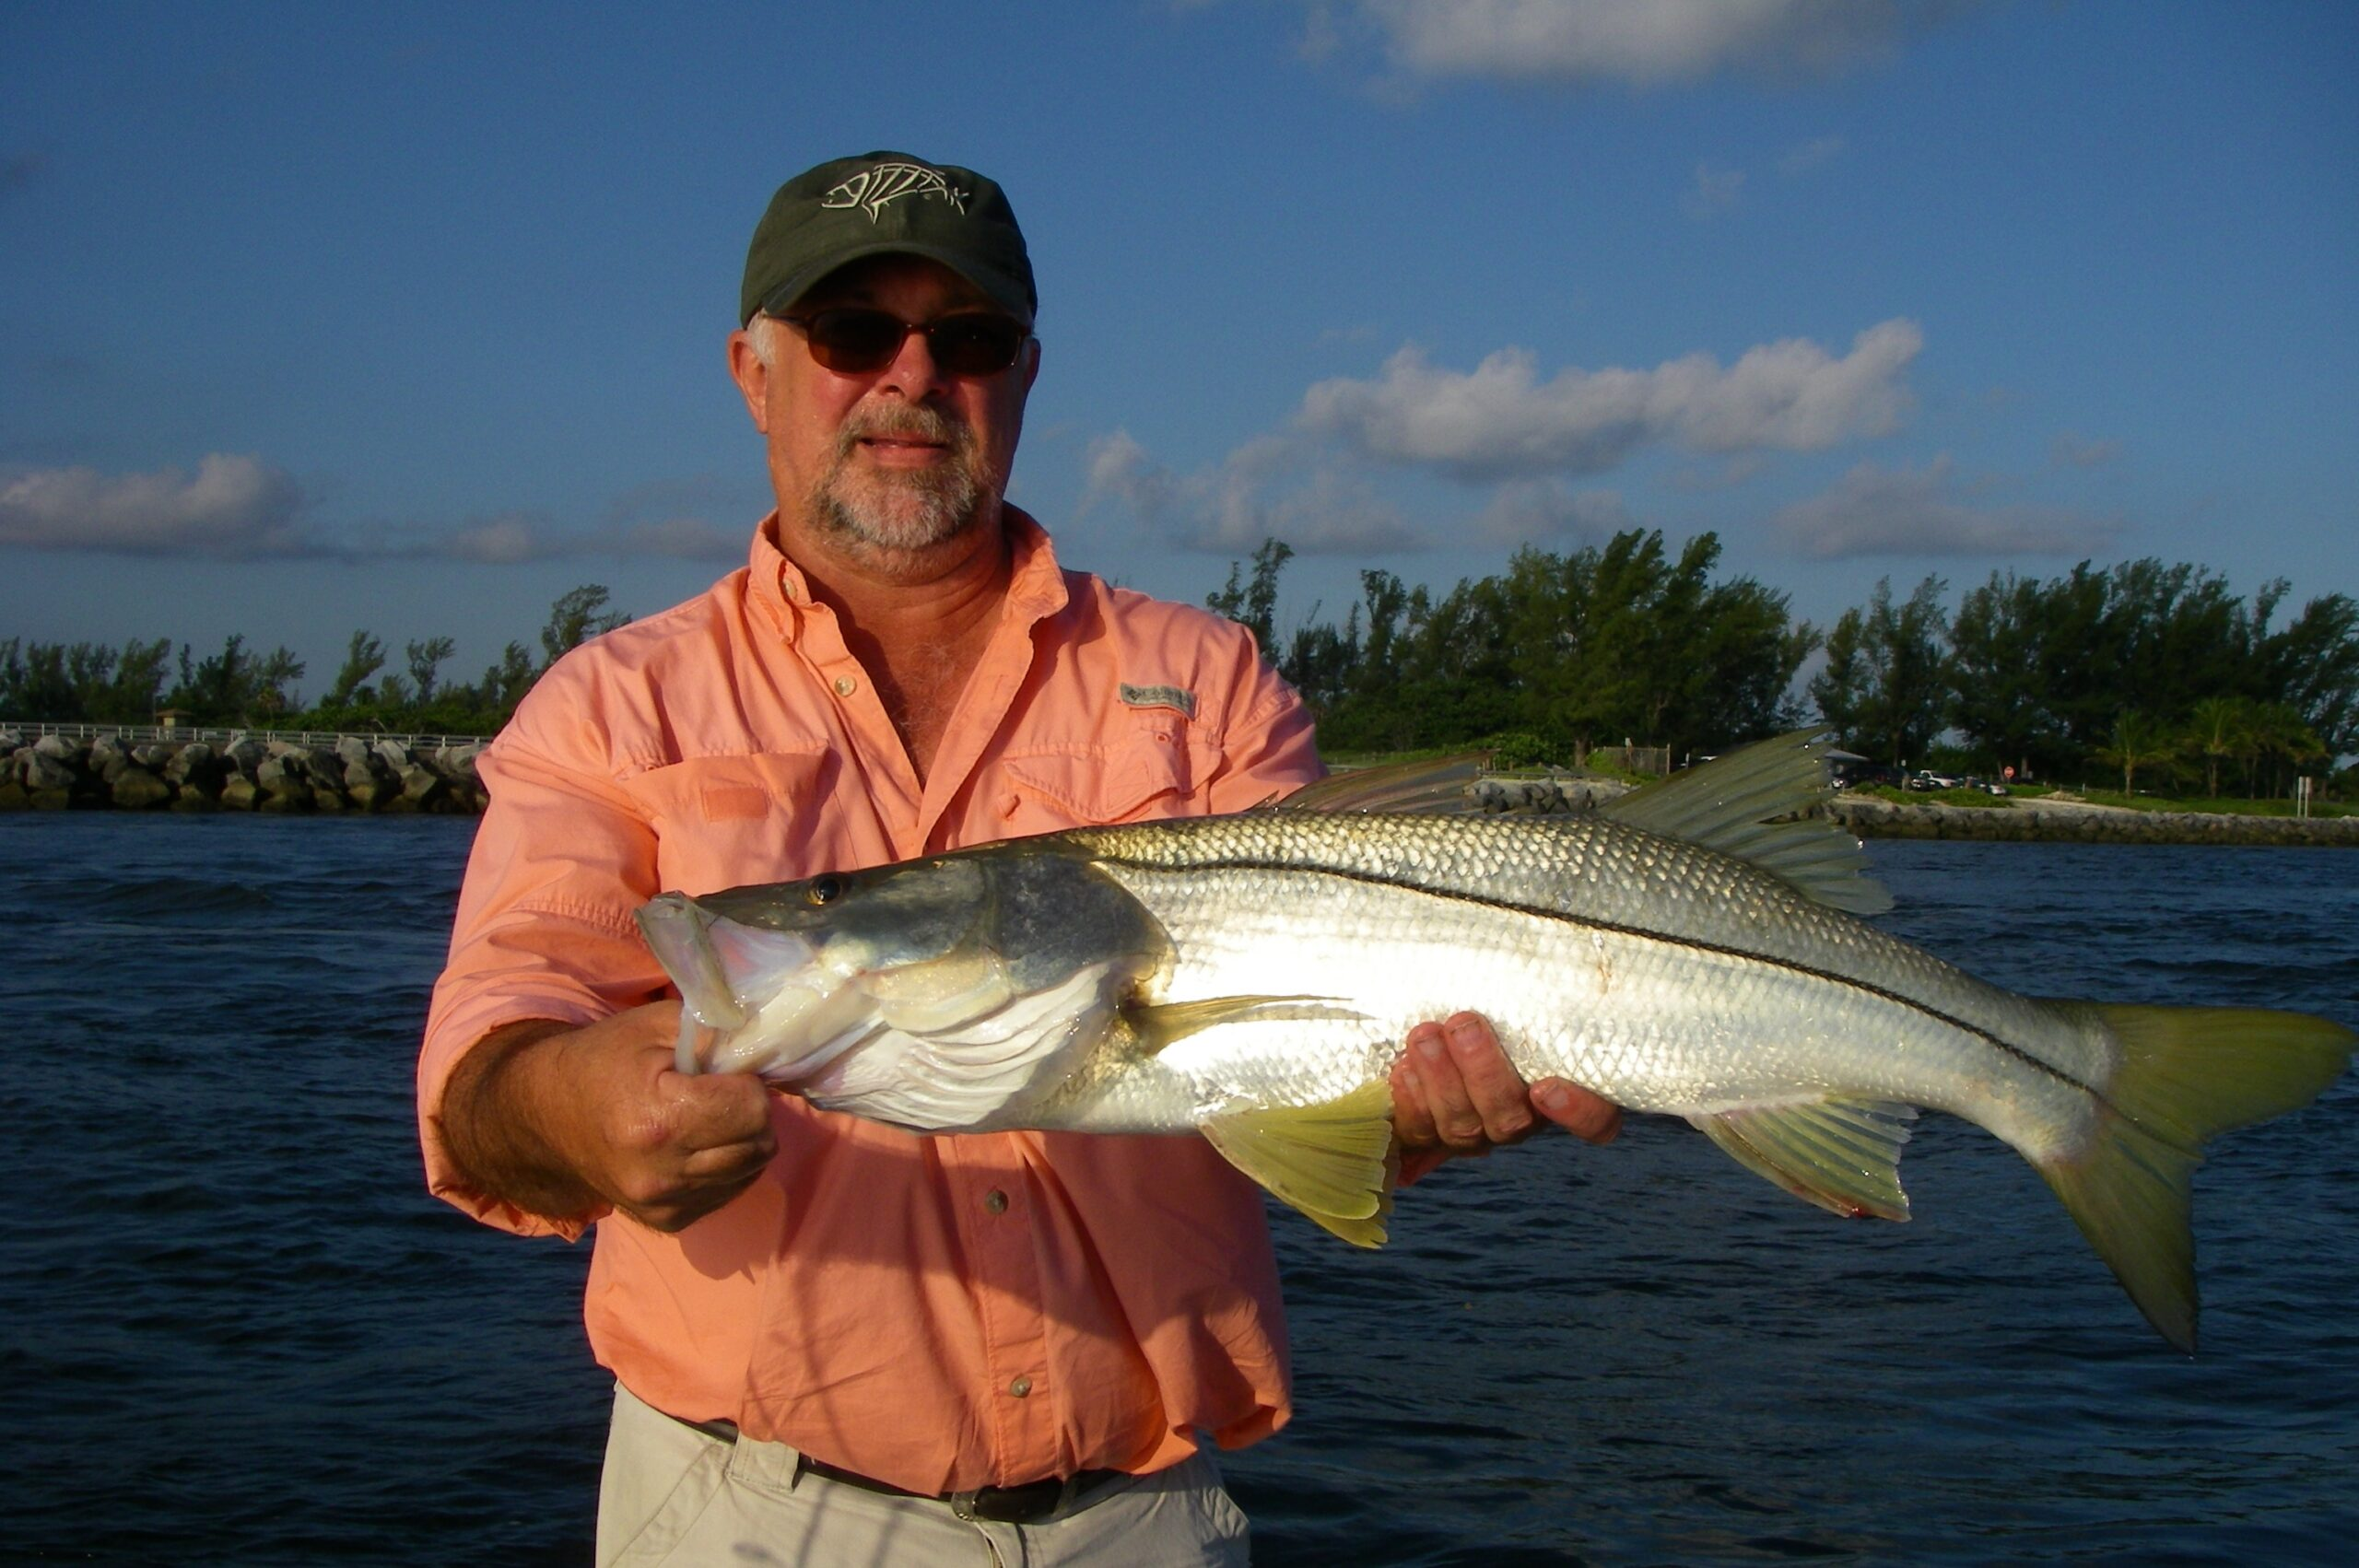 Some sportfish fare well in both natural and restored habitats. Credit: Florida Fish and Wildlife/CC BY-ND 2.0